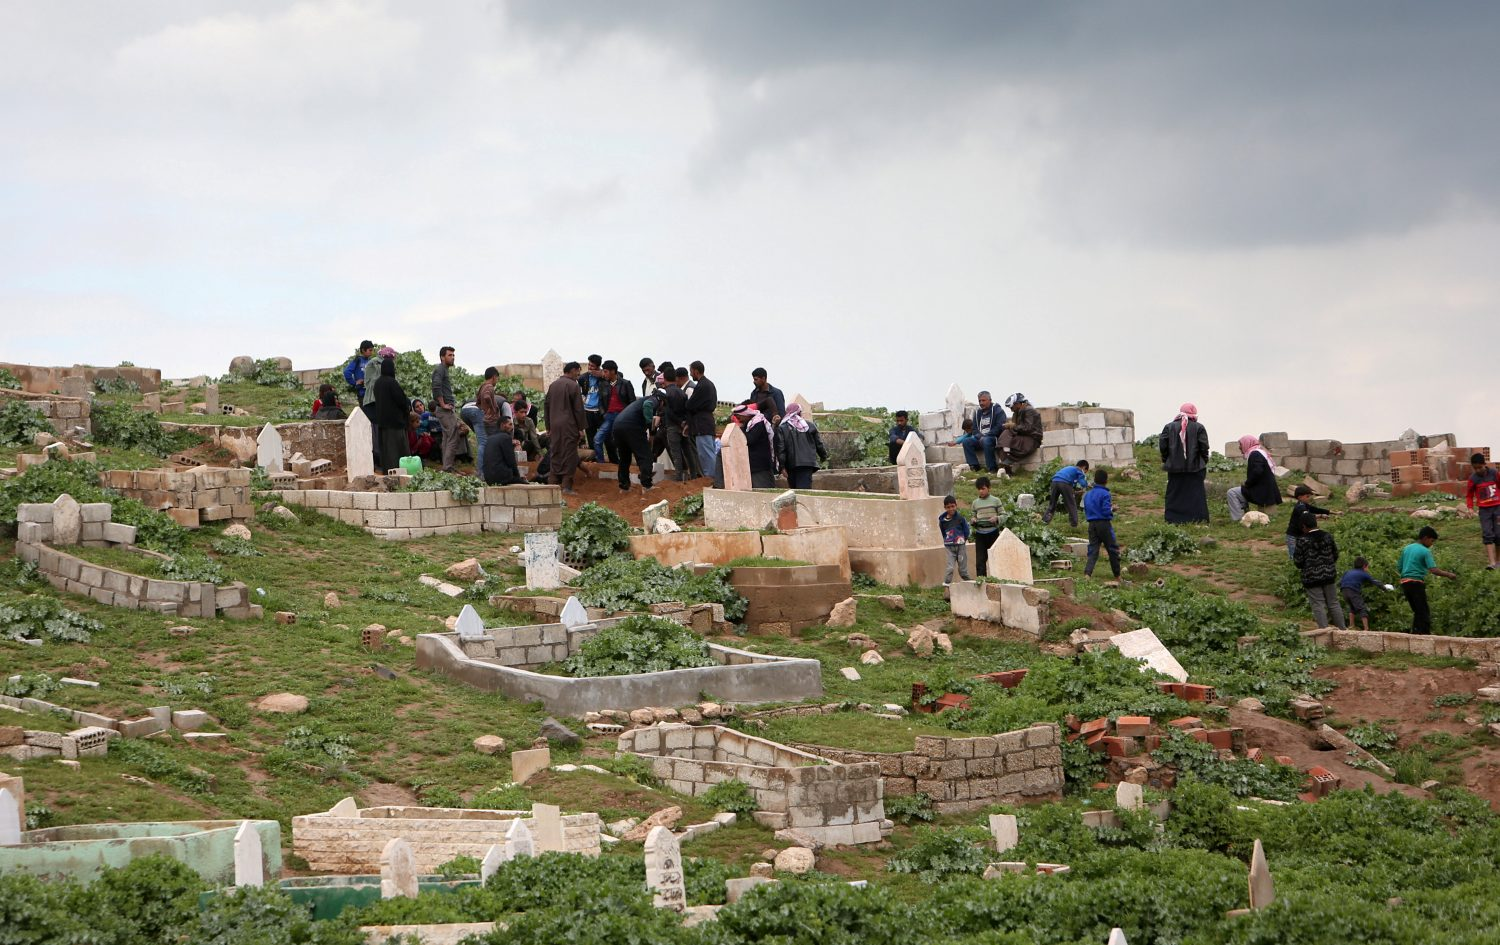 Kurdish people visit a cemetery in Hasaka governorate, Syria April 1, 2019. Picture taken April 1, 2019. REUTERS/Ali Hashisho